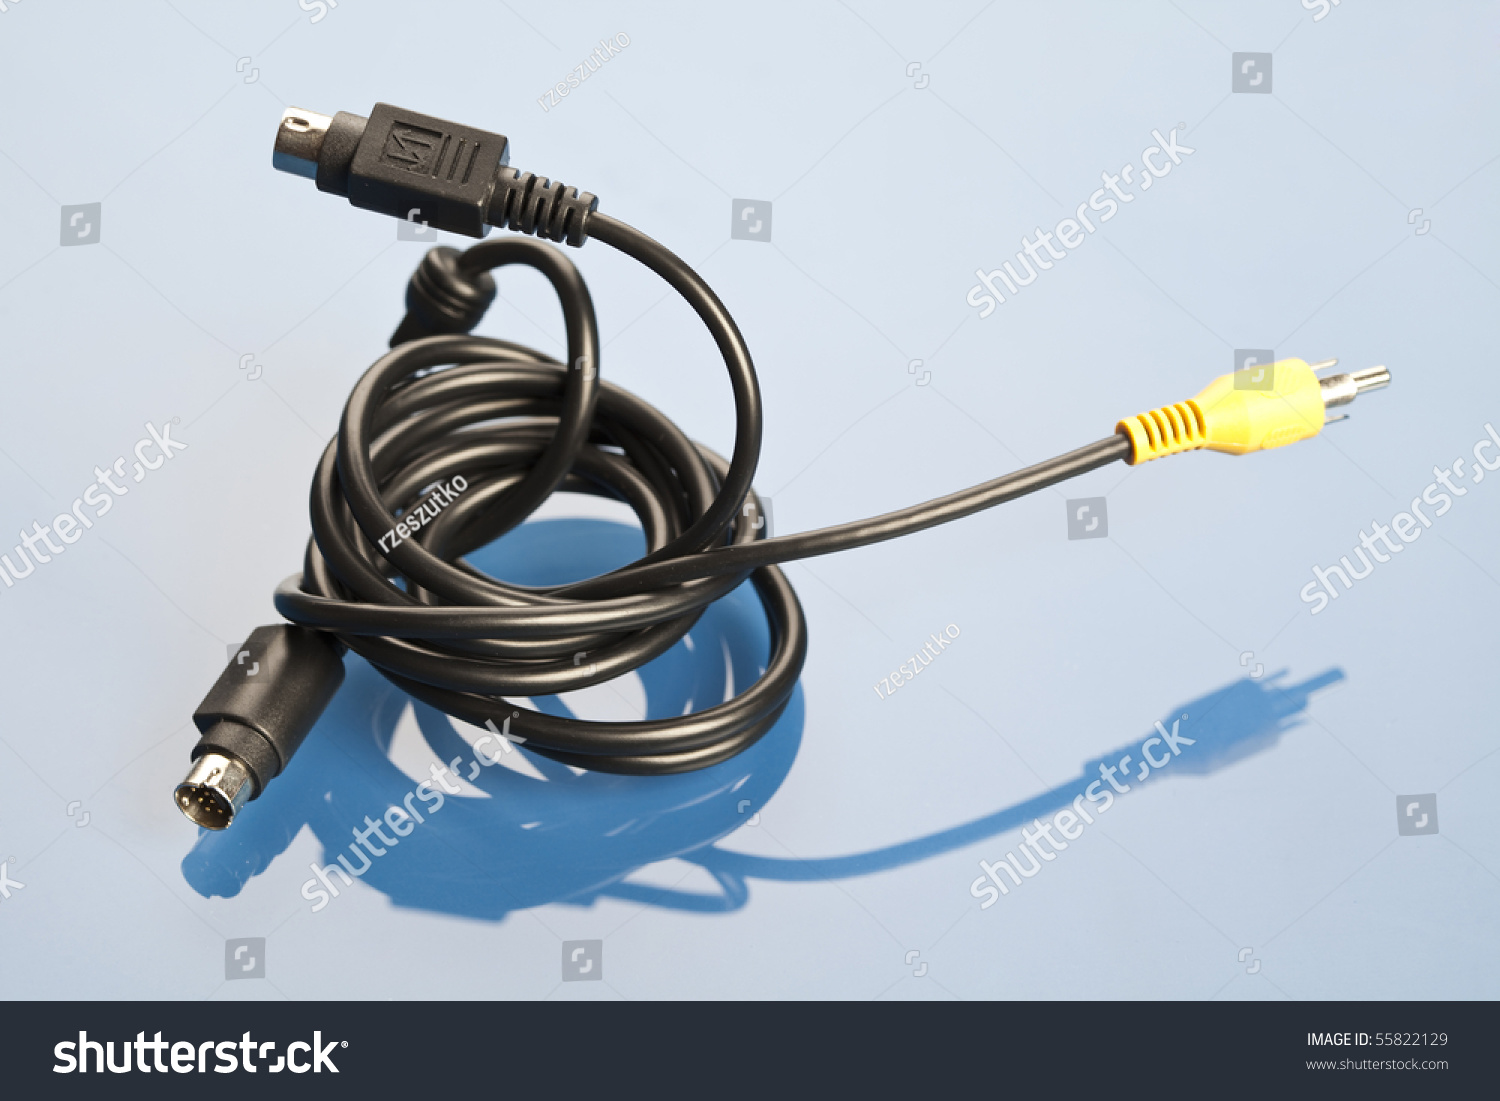 Electronic Schematic Diagram Ideal Technology Background Stock Photo Electronics An